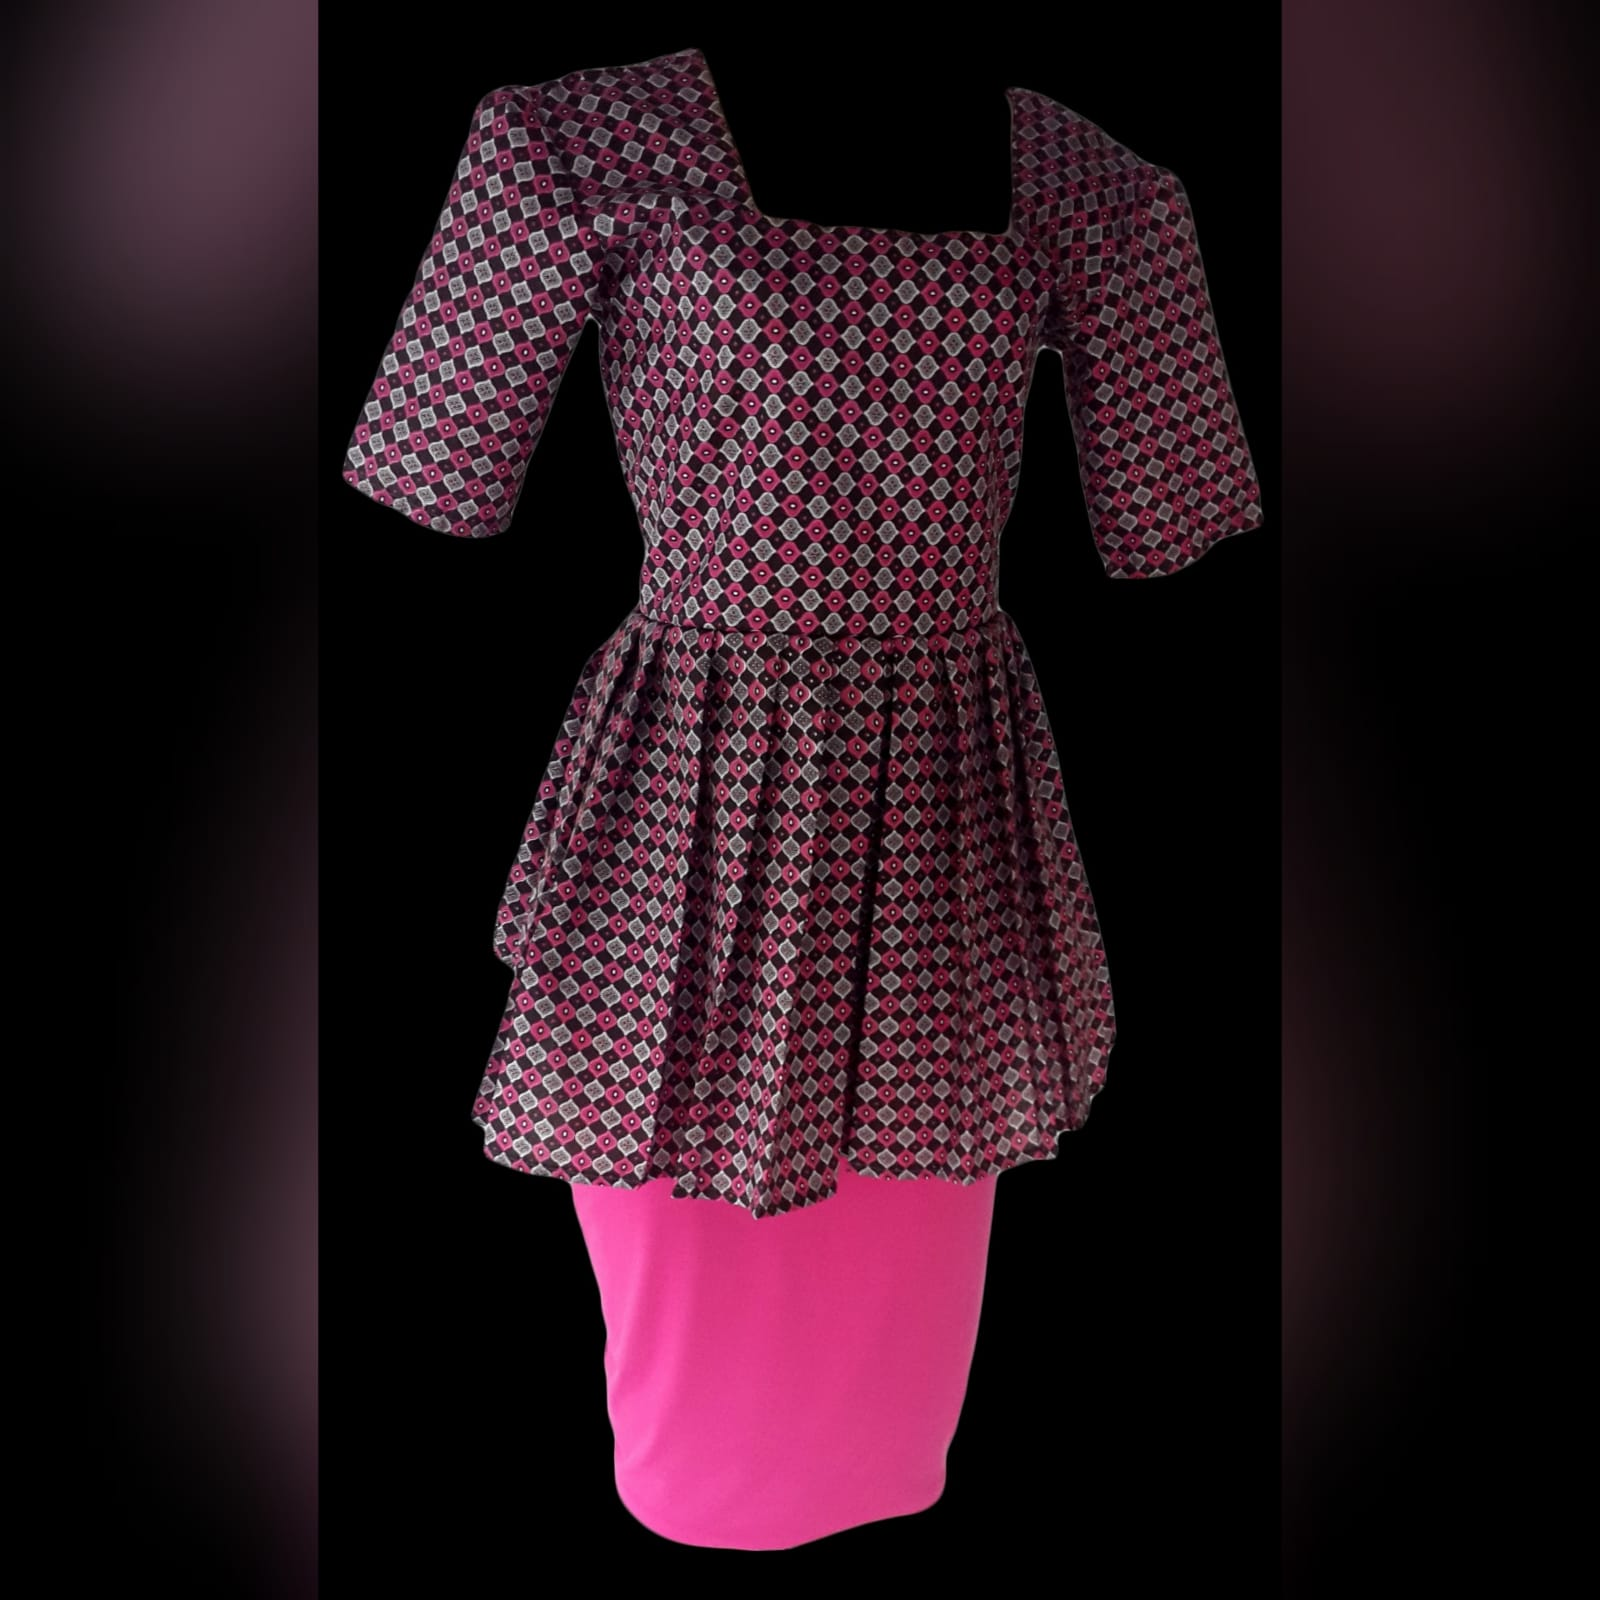 Pink pencil skirt and traditional top in xhosa print 4 a stretch pencil skirt and a traditional top with a square neckline. 3/4 sleeves & frills on the waist. Delivered to the client.